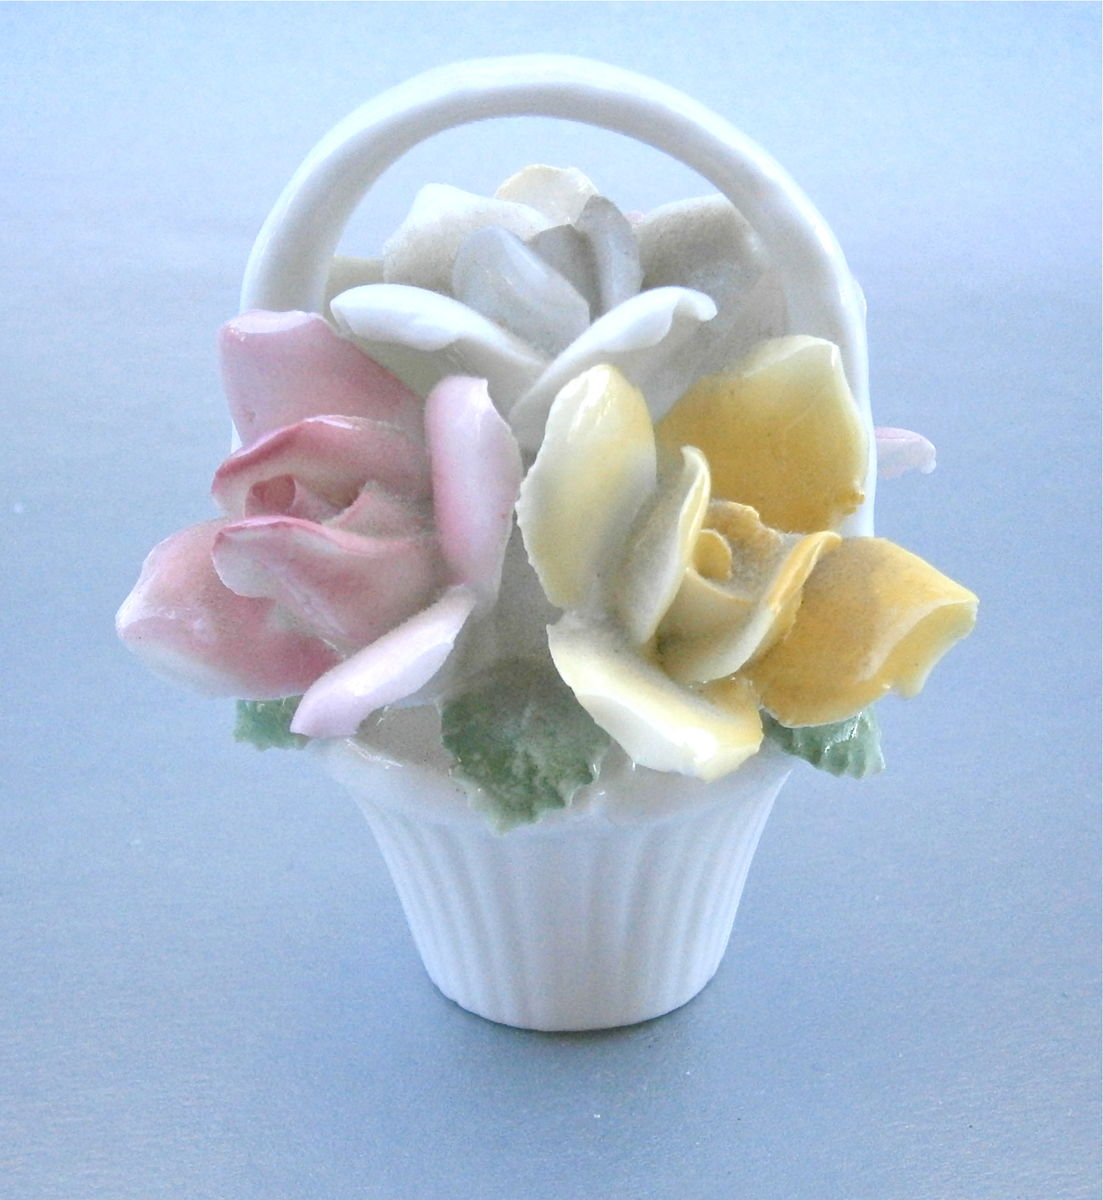 Vintage Pastel Floral Basket Glazed Ceramic Figurine Pink Yellow White Flowers Bouquet Basket Handle Shabby Cottage Chic Display Porcelain  - product images  of